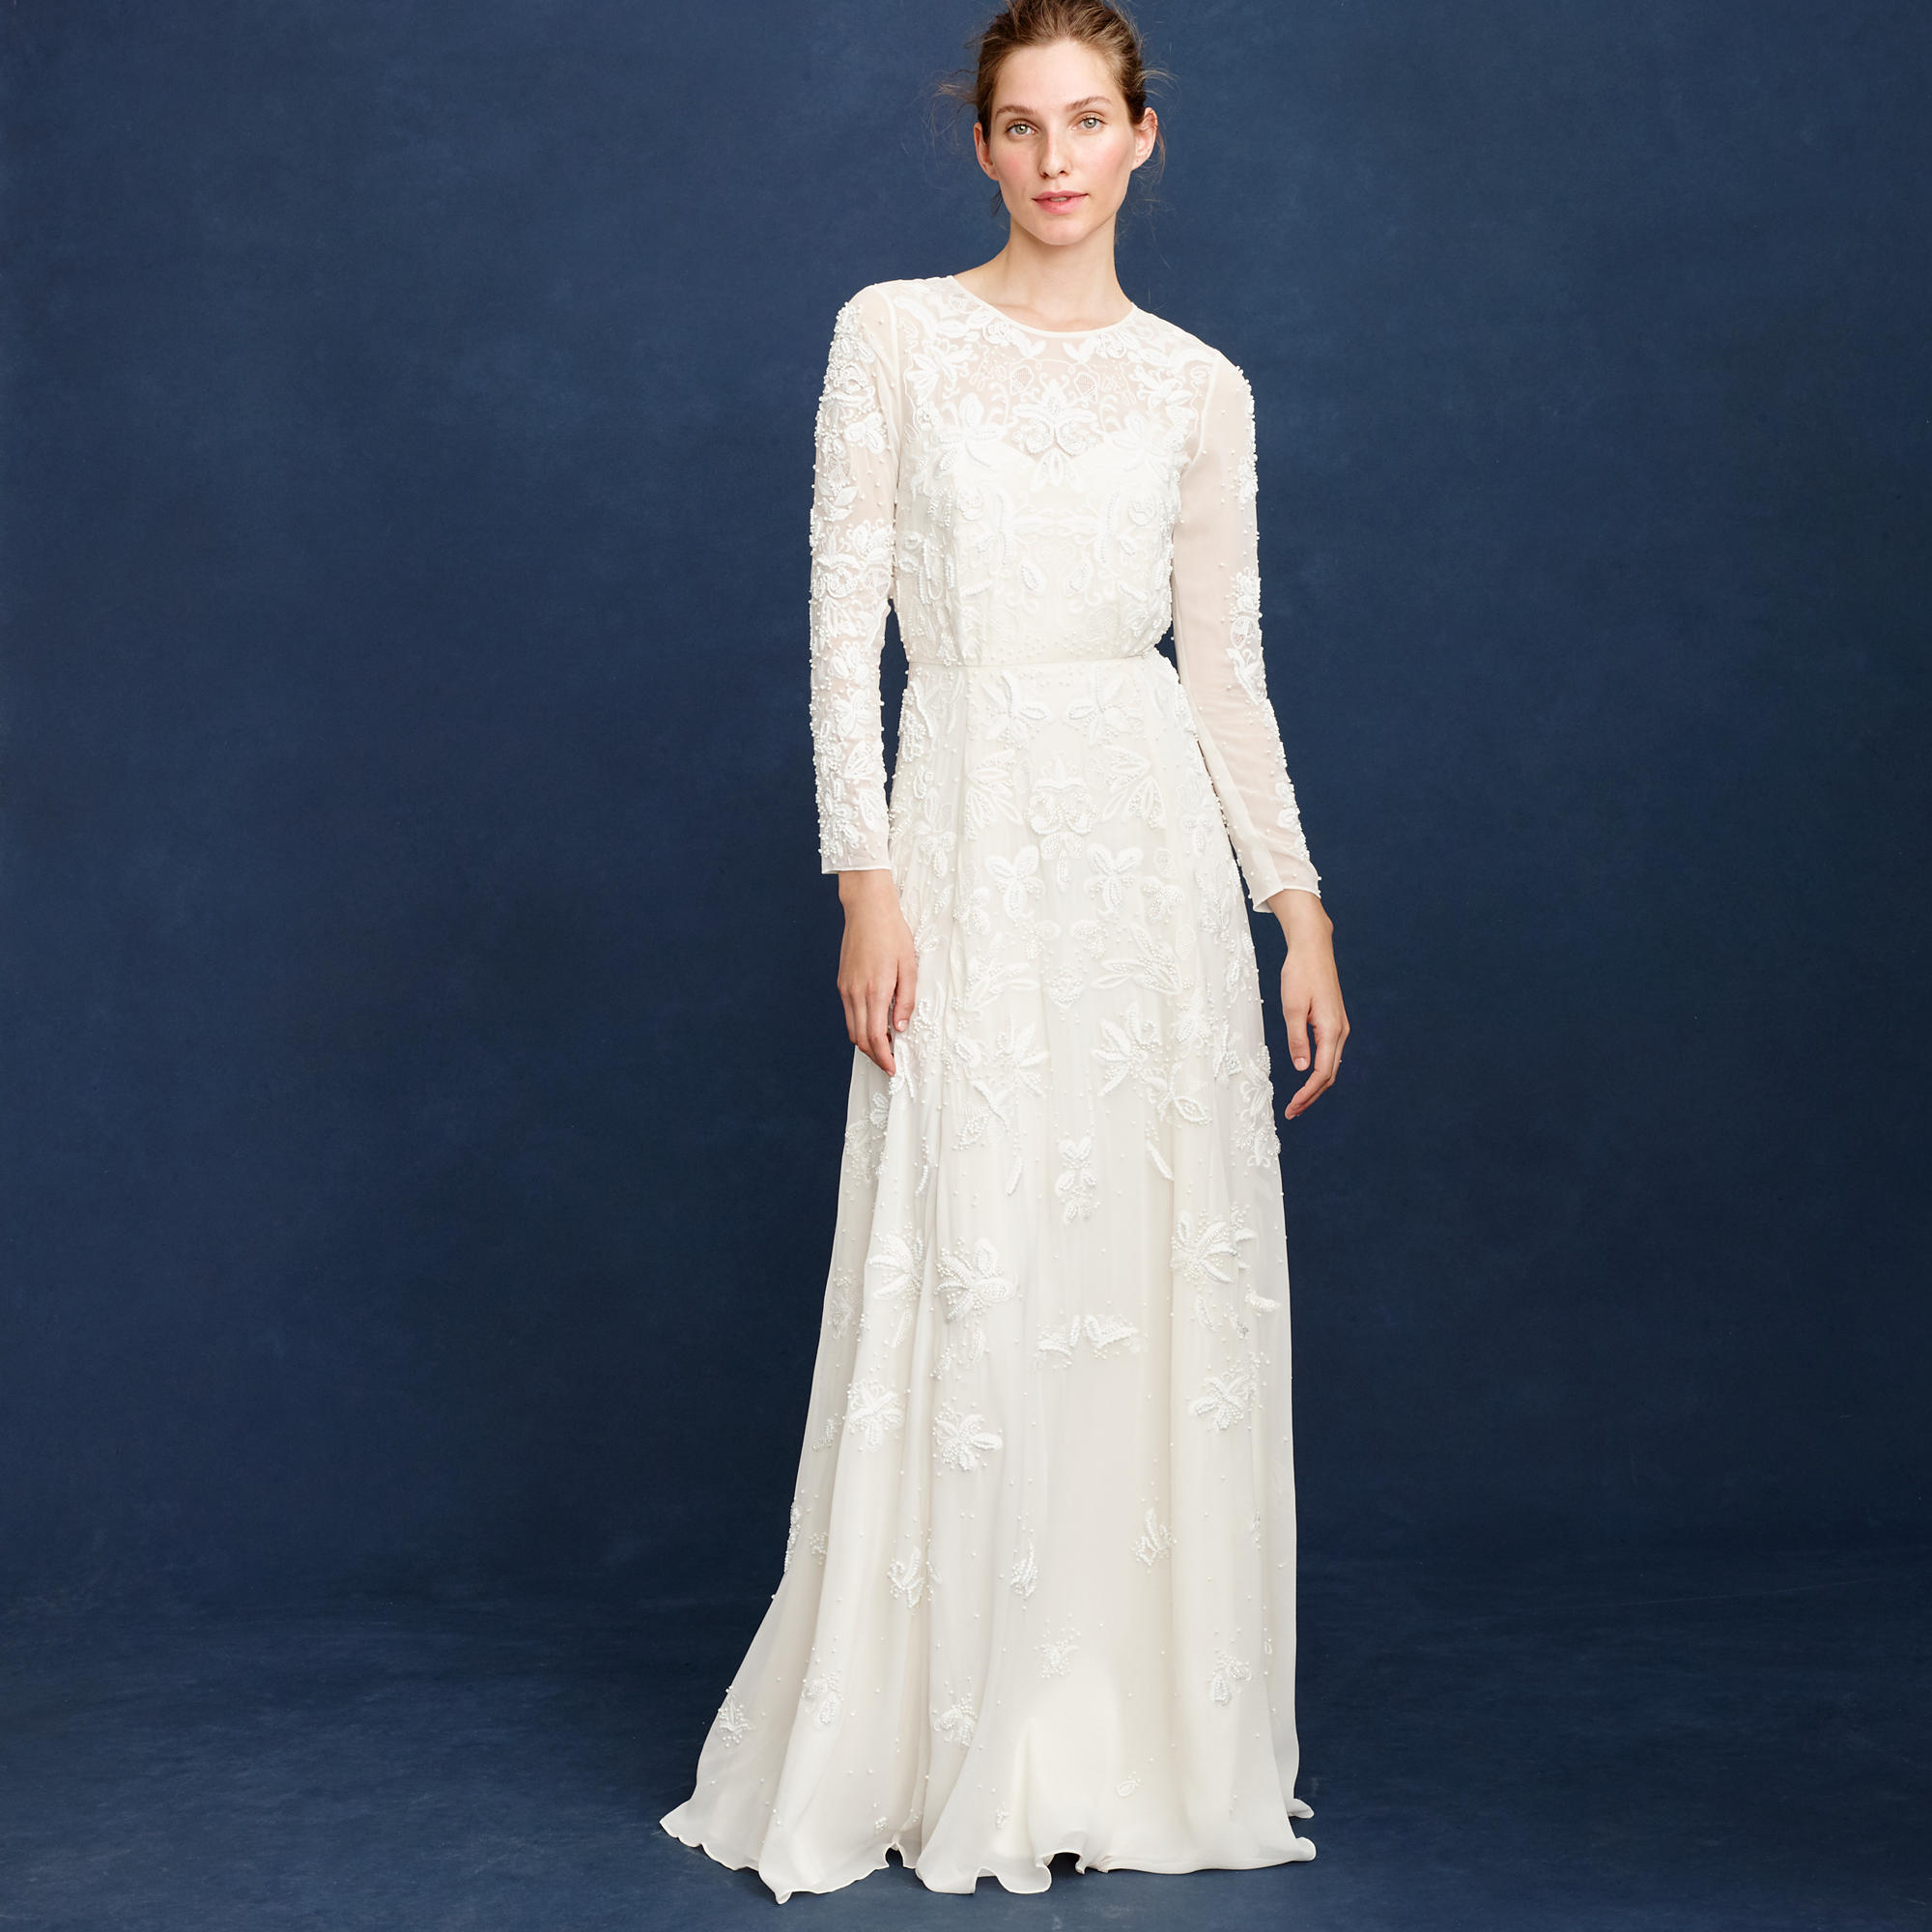 Florence gown wedding dresses j crew for J crew wedding dresses